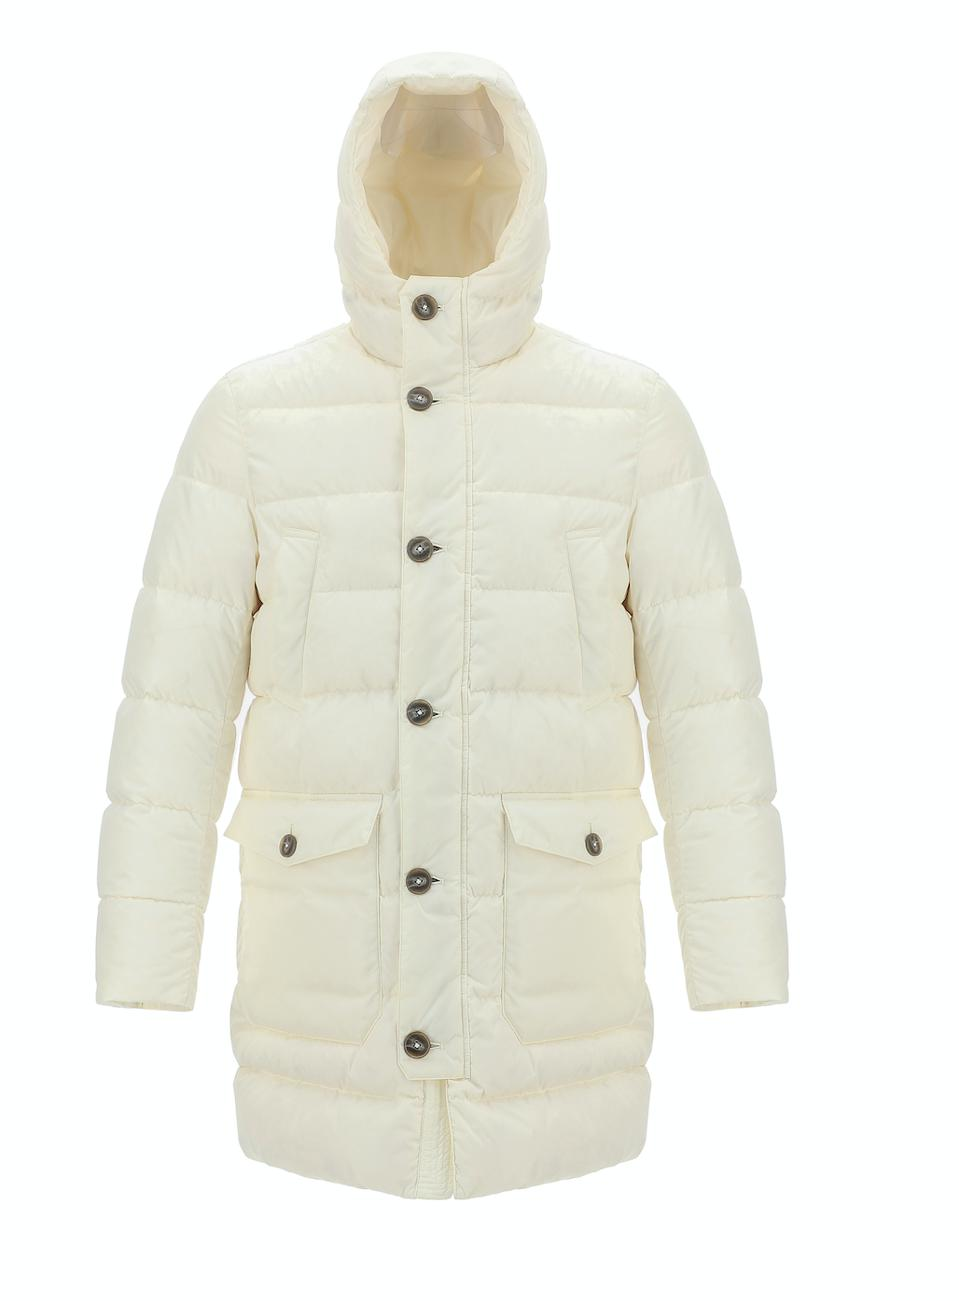 Herno Globe Jacket: Winter white puffer made from Econyl nylon that comes from recycled fishing nets and fabric/carpet remnants headed to landfills